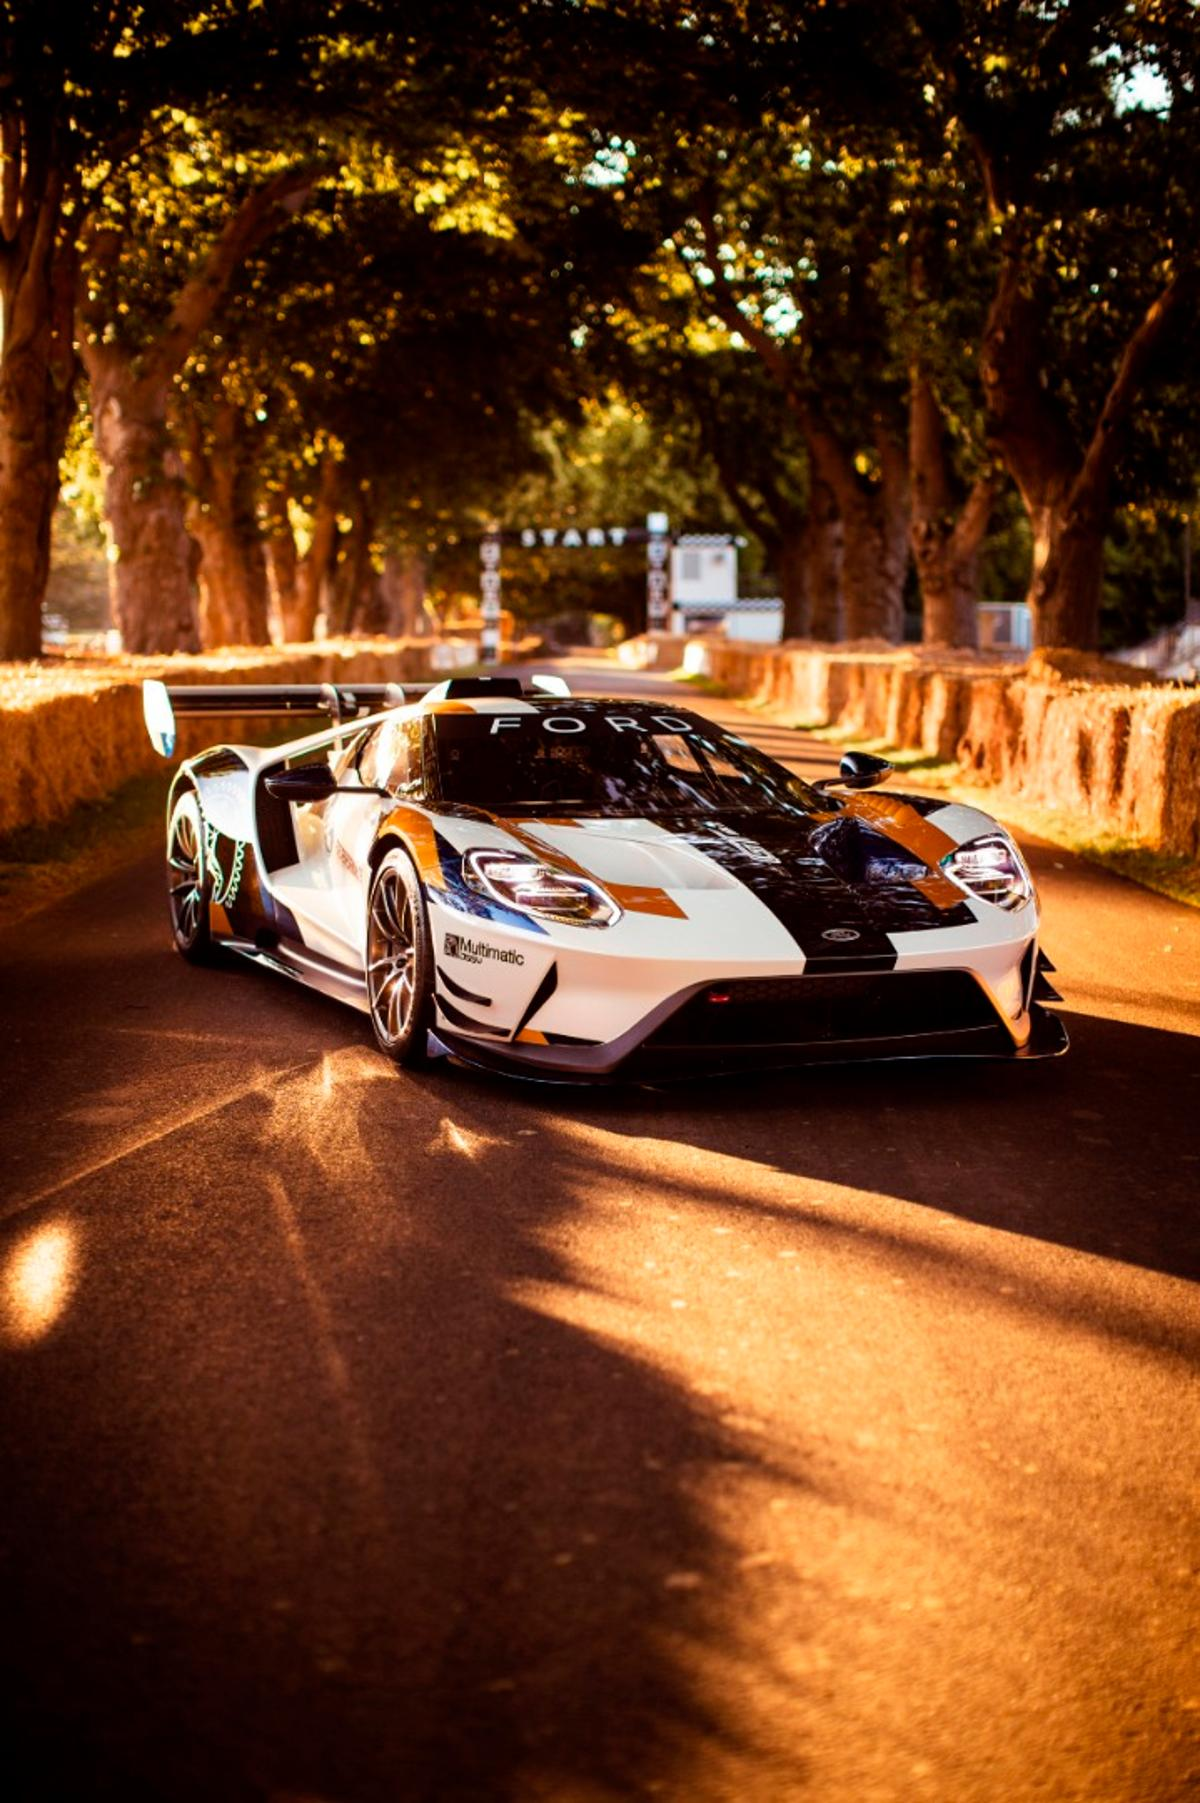 The FordGT Mk II, built for the track